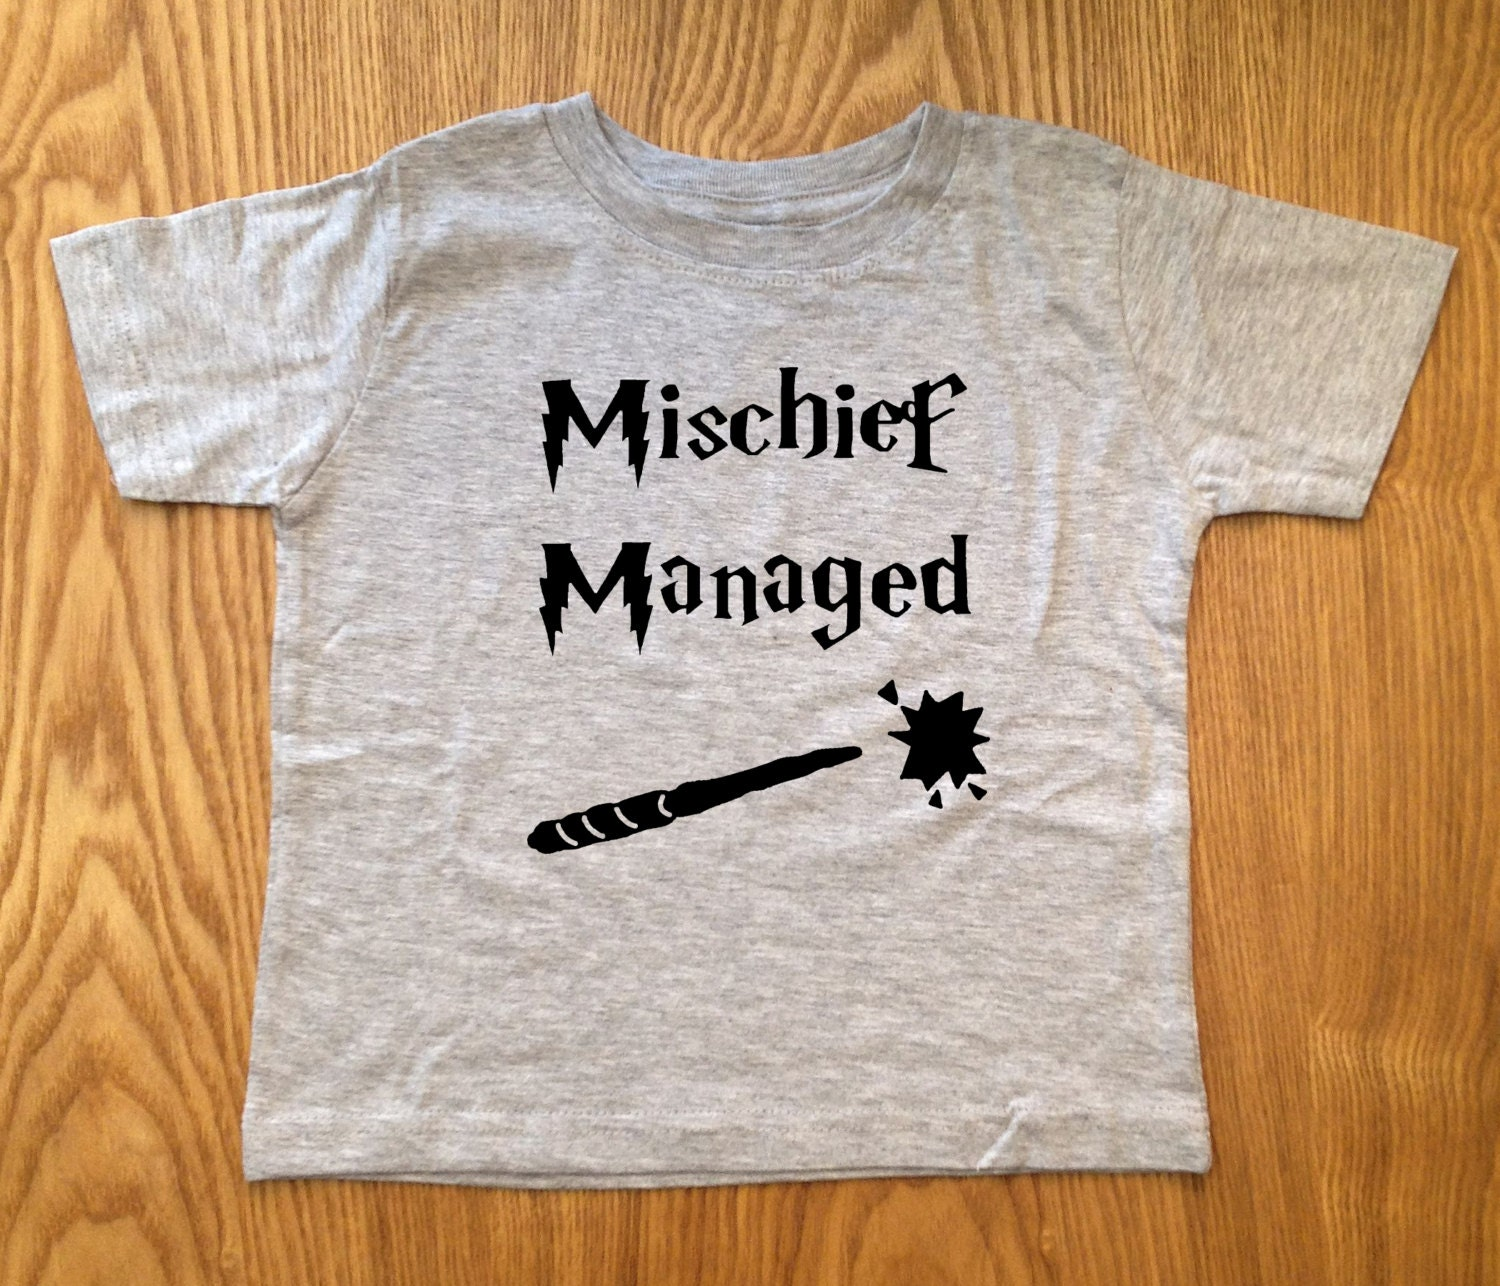 Cute and Funny MISCHIEF MANAGED Harry Potter Childrens Shirt